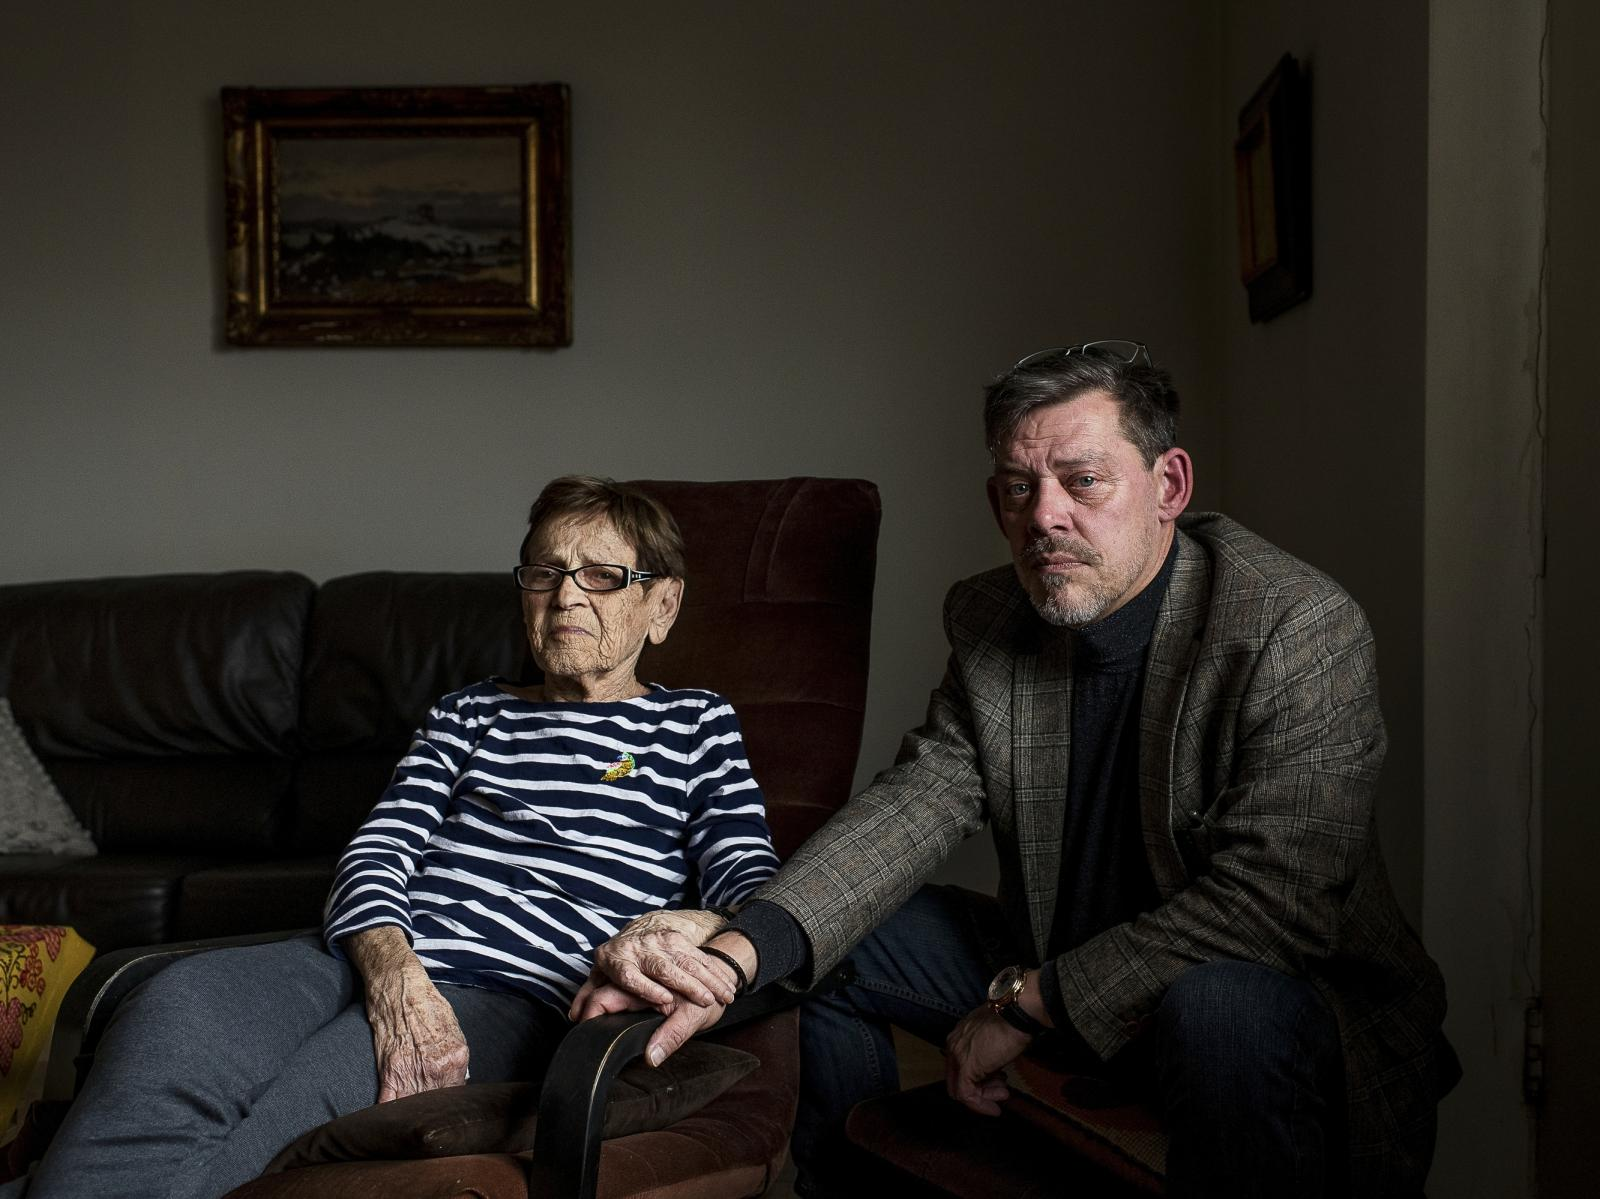 Rainer Hoess, the grandson of the Auschwitz commandaner Rudolf Hoess, poses for a portrait with Auschwitz survivor Edith Grosman, 95, at her home in Toronto on November 3, 2019. Hoess has dedicating himself to talking about his family's past, and supporting holocaust survivors in an attempt to combat hate and rising extremism. /Aaron Vincent Elkaim for The Globe and Mail